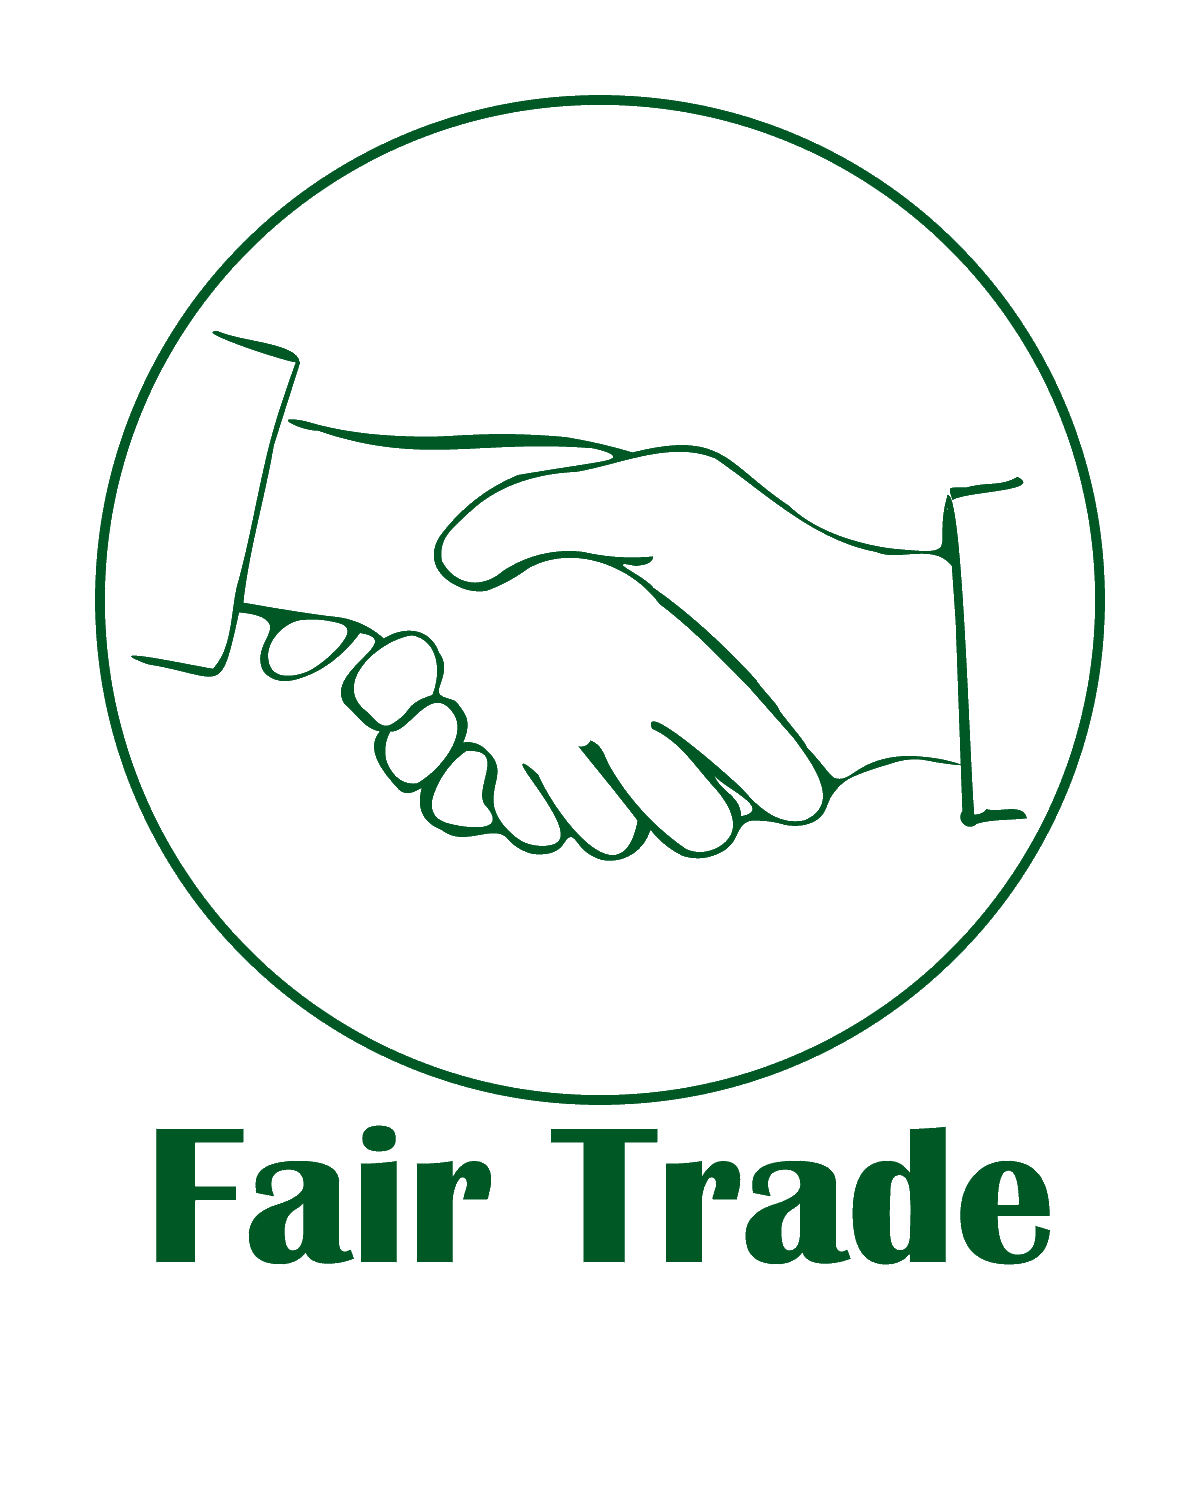 The Green Bundle Fair Trade Logo